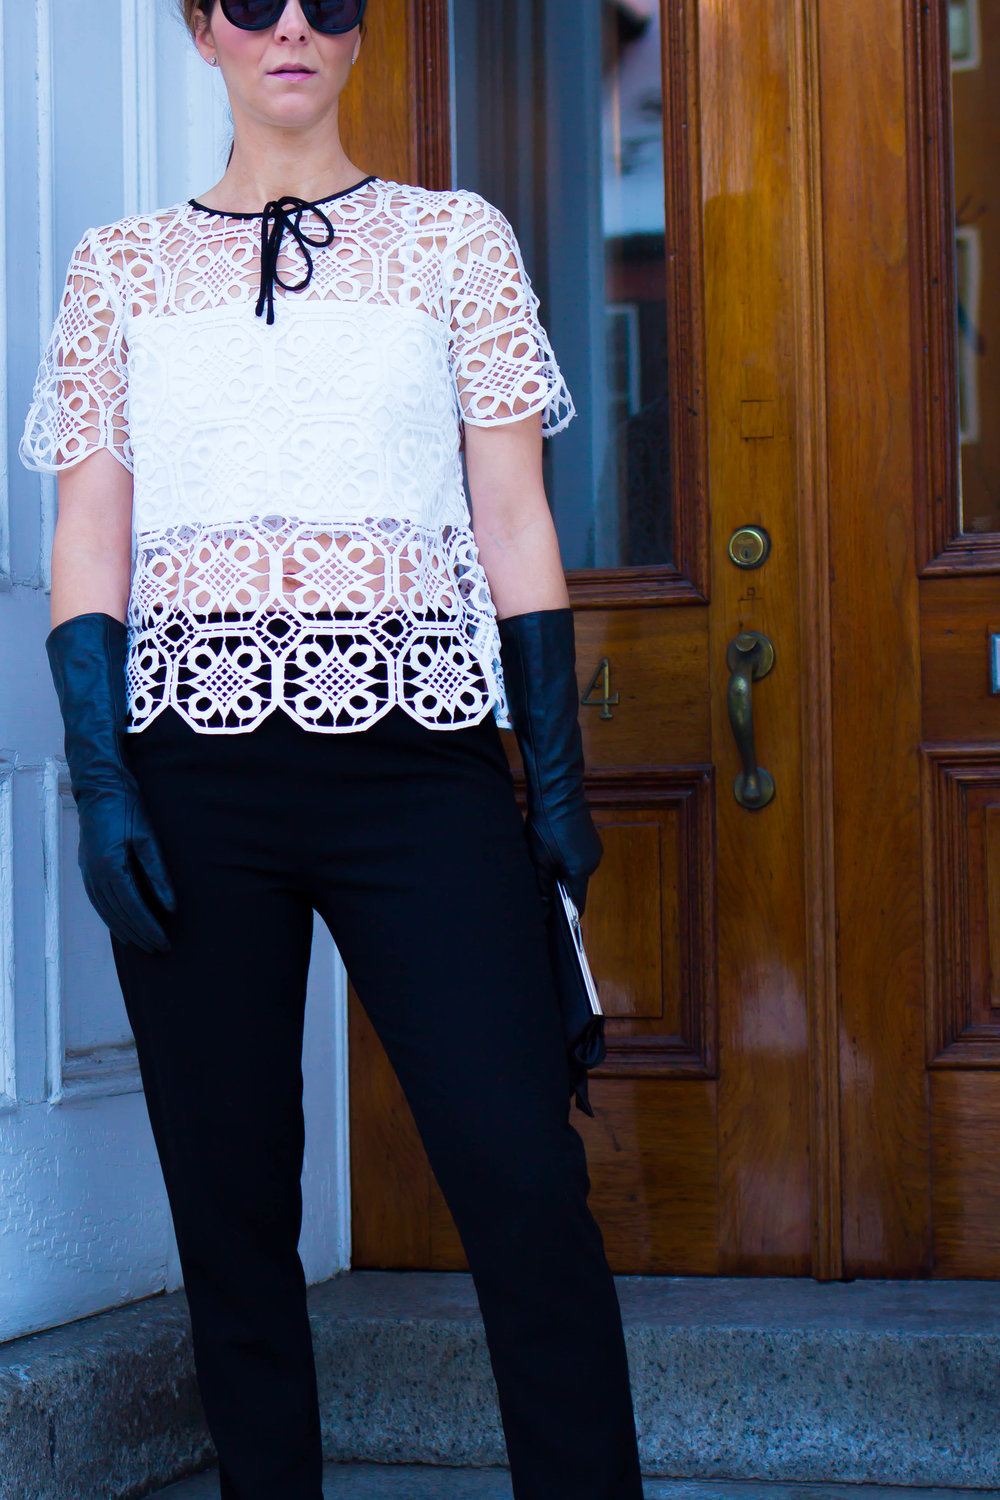 Work Wear Outfits - Casual Outfits - Weekend Outfits - Date Night Outfit - Long Leather Glove Outfits - White Crochet Top Outfits - Black and White Outfit Ideas- Fashion for Women -  heartandseam.com  #heartandseam